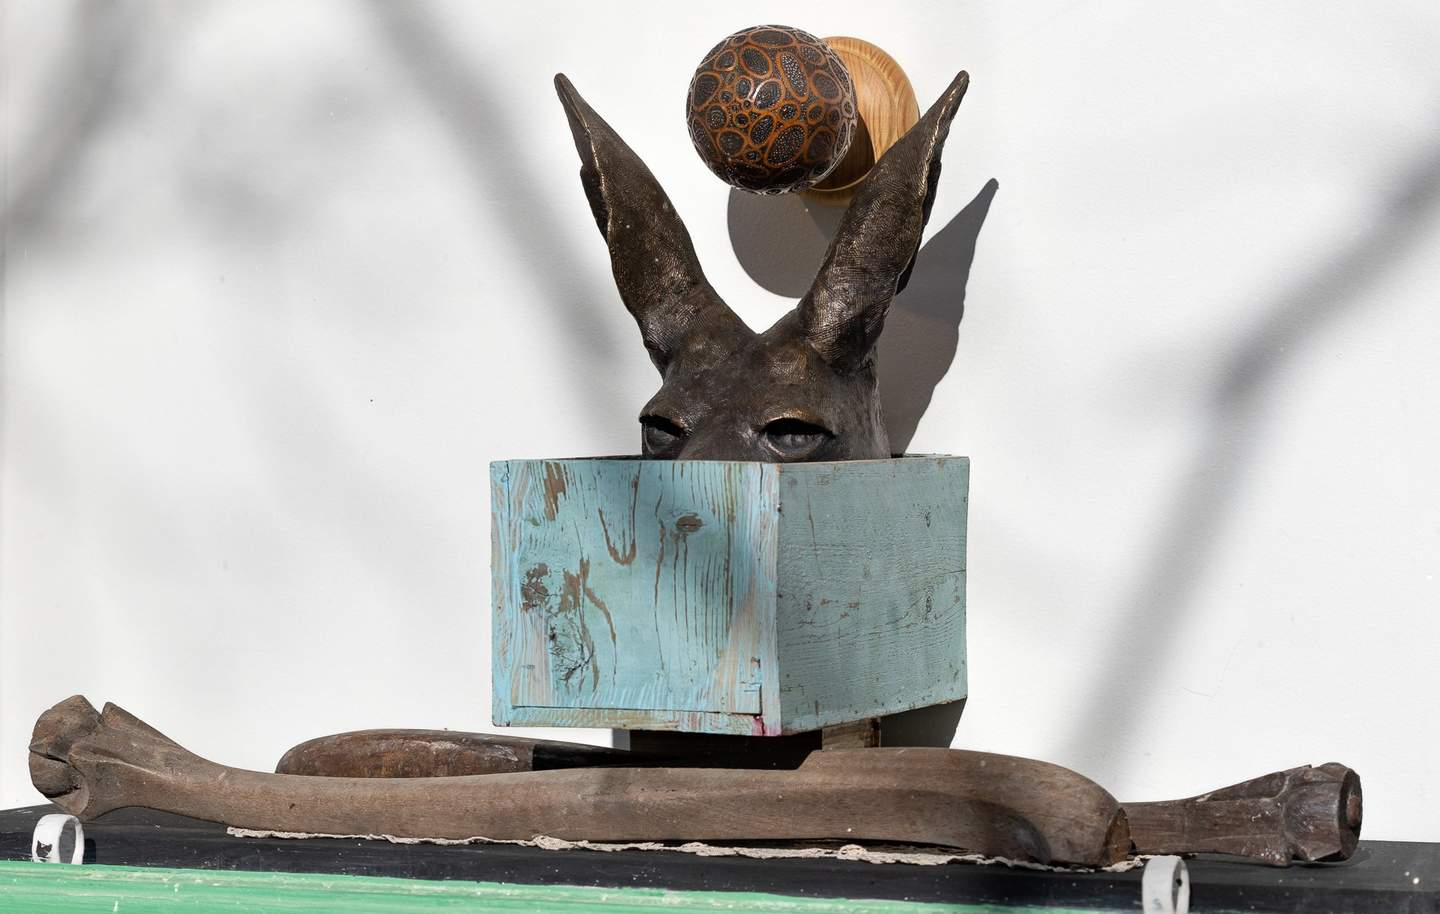 A sculpture depicts an ornate doorknob fixed above a bronze kangaroo head that sits in a box above two carved wooden bones.